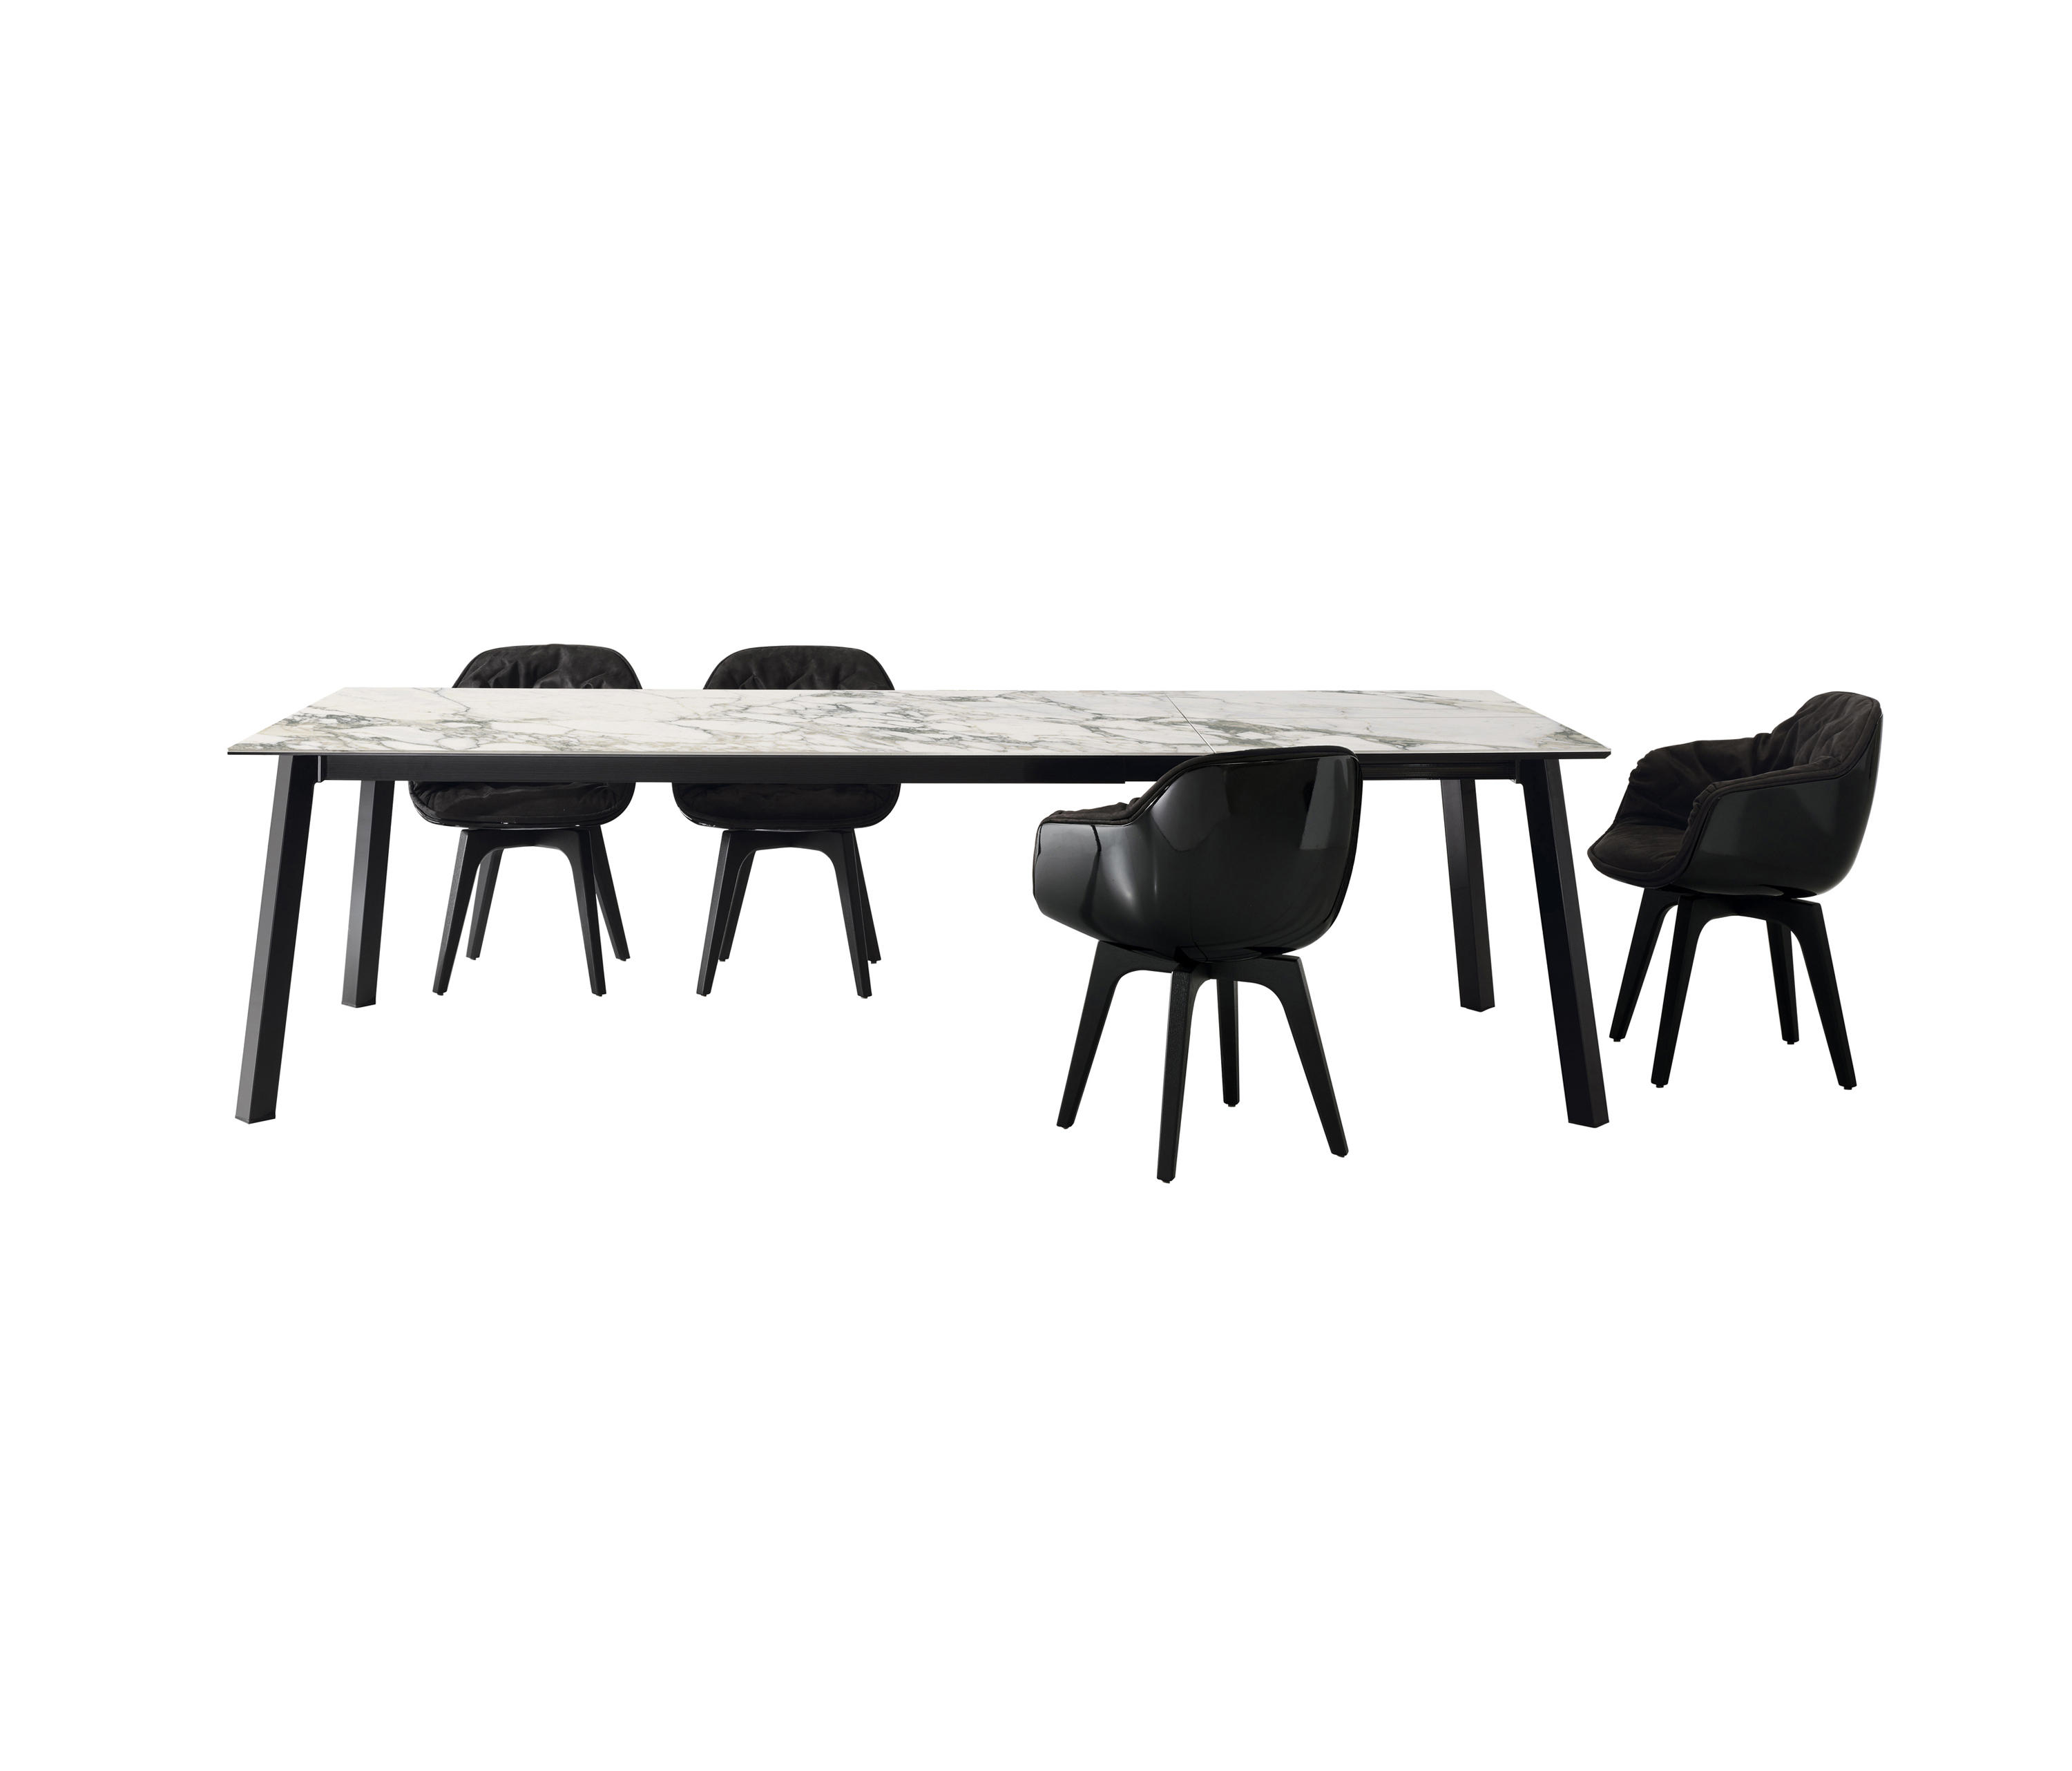 Merlot Extending Table Designer Furniture Architonic